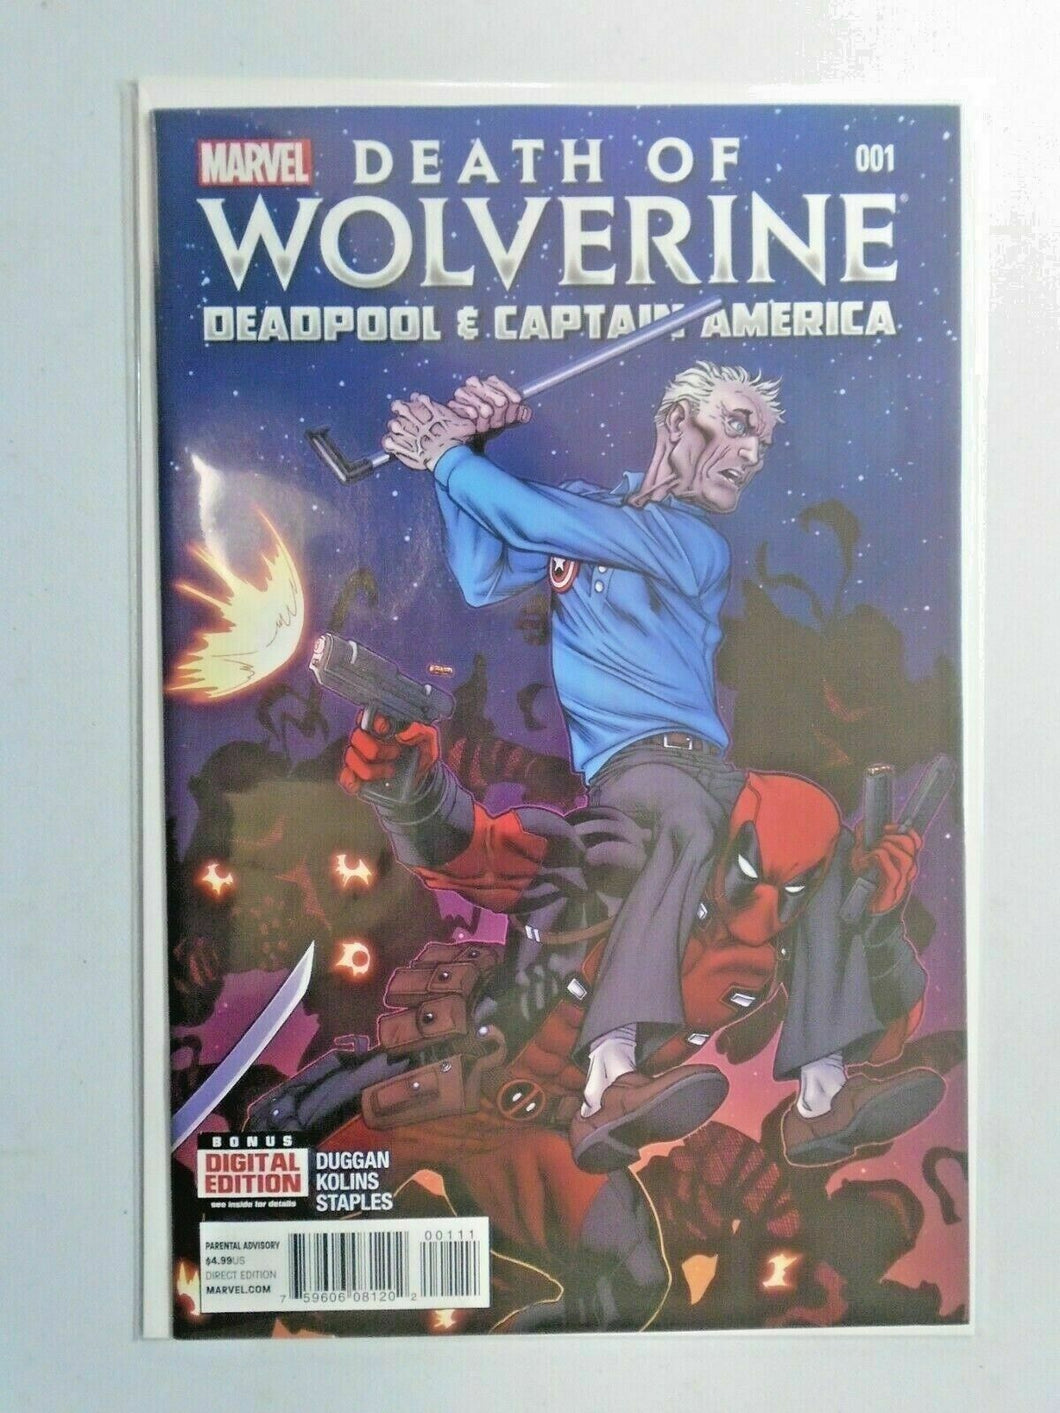 Death of Wolverine Deadpool and Captain America #1 - NM - 2014